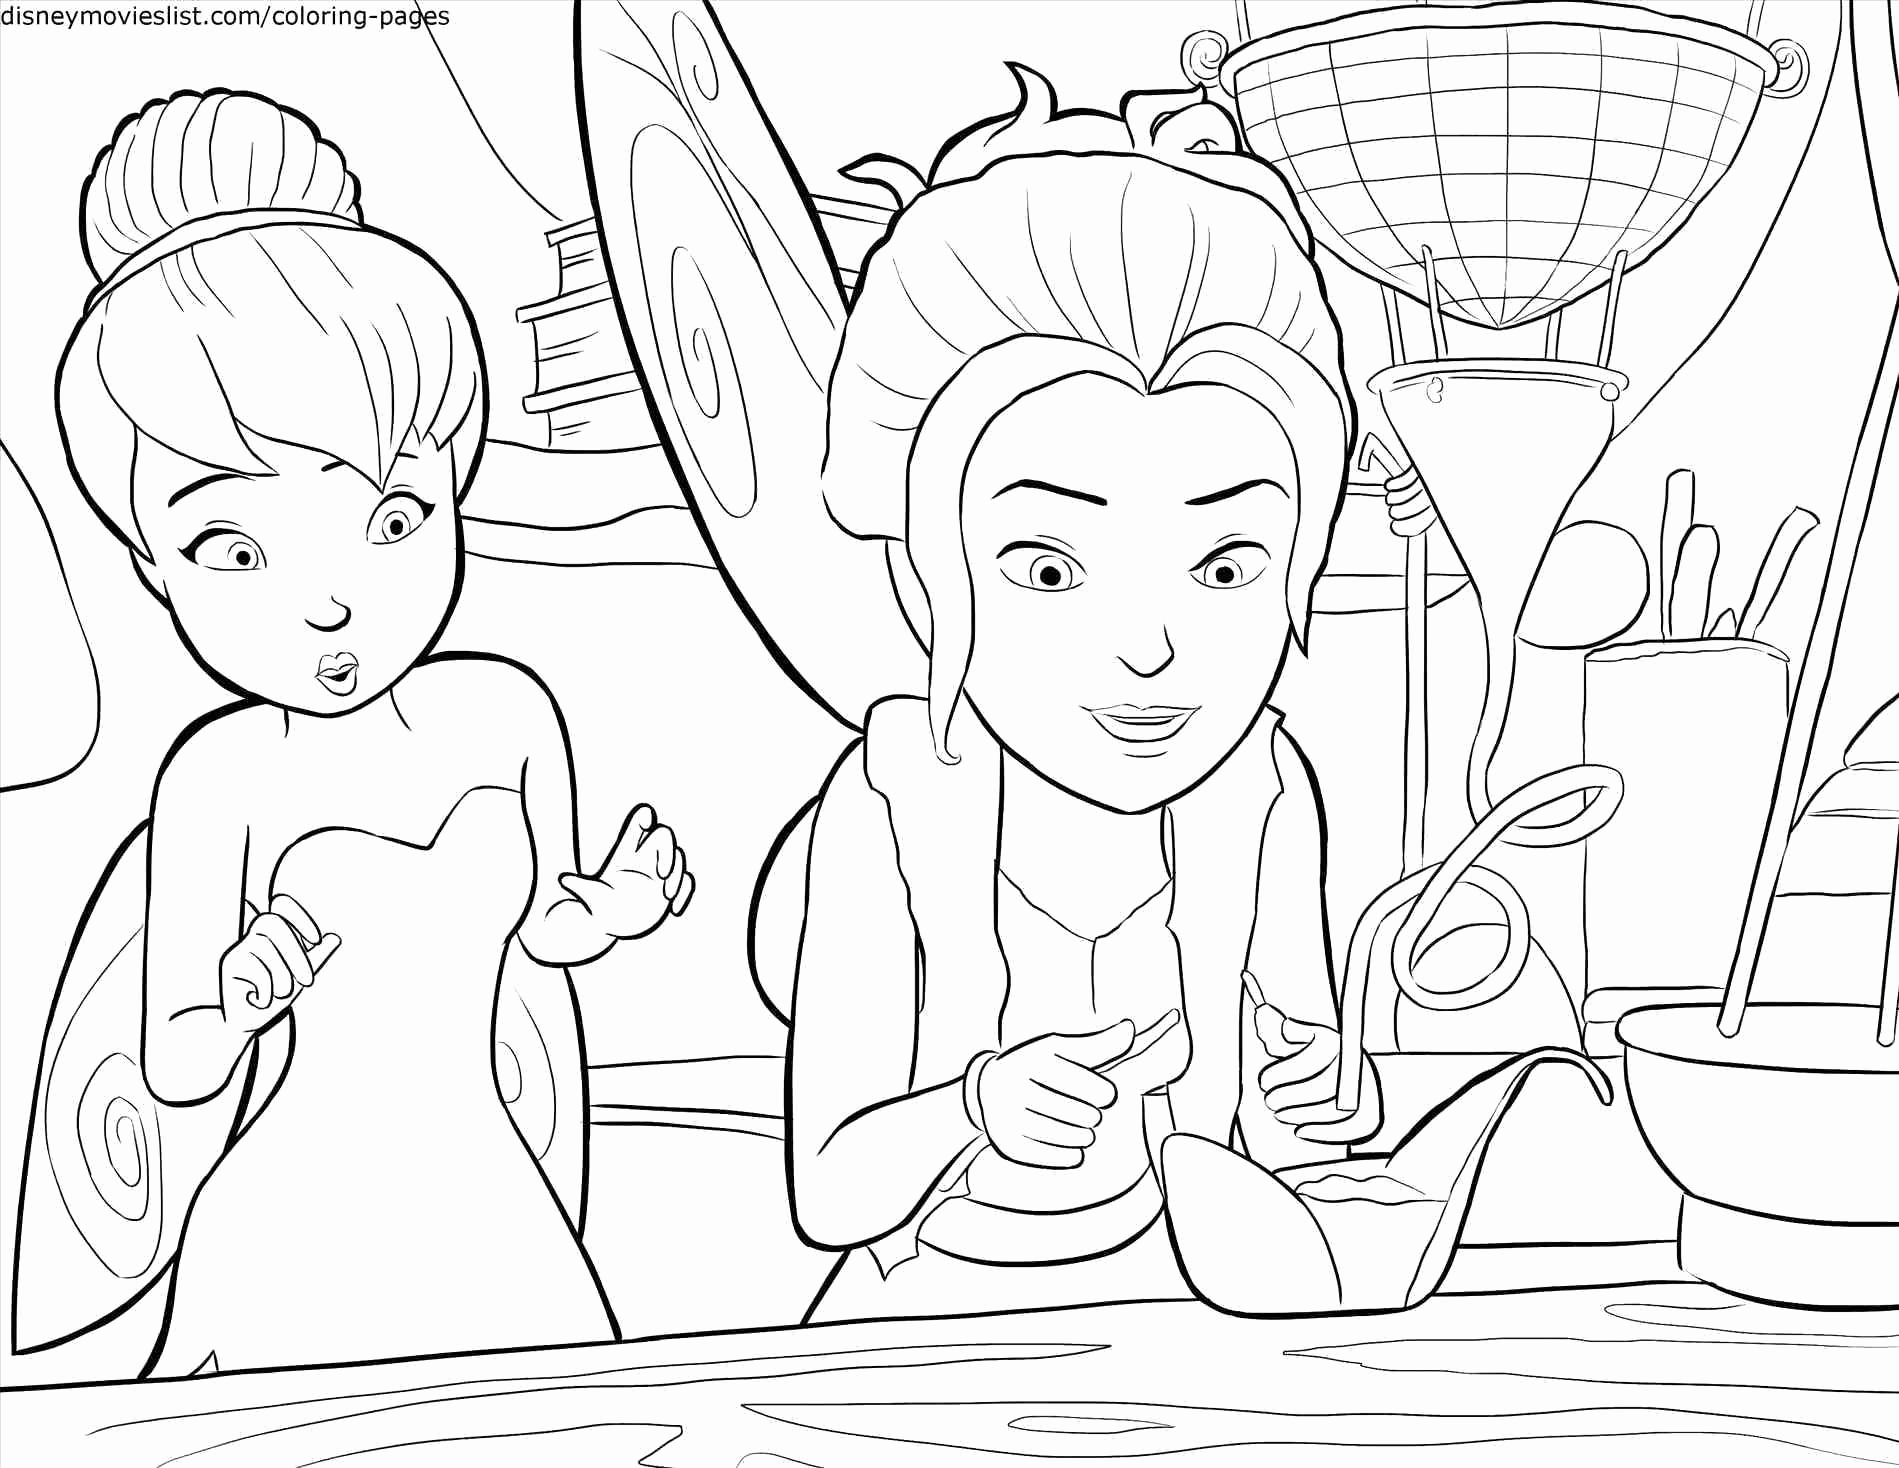 coloring disney fairies printable disney fairies coloring pages for kids cool2bkids fairies disney coloring